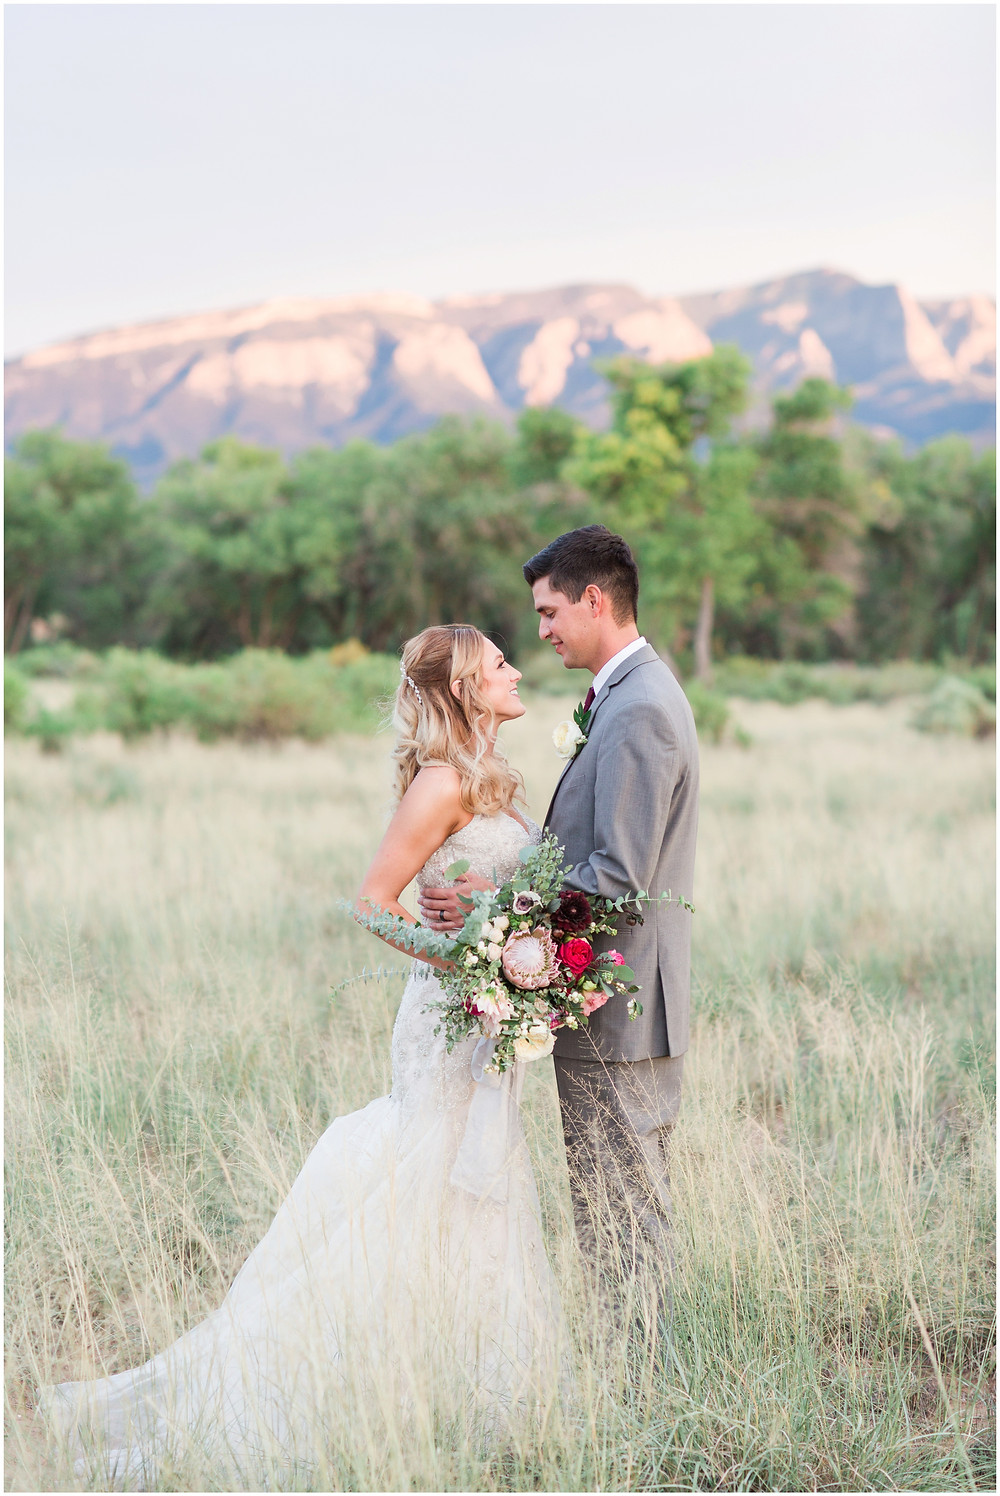 Wedding at Hyatt Tamaya. Outdoor wedding New Mexco. New Mexico Wedding photographer. maura Jane photography. burgundy wedding. bride and groom photos. sunset photos.